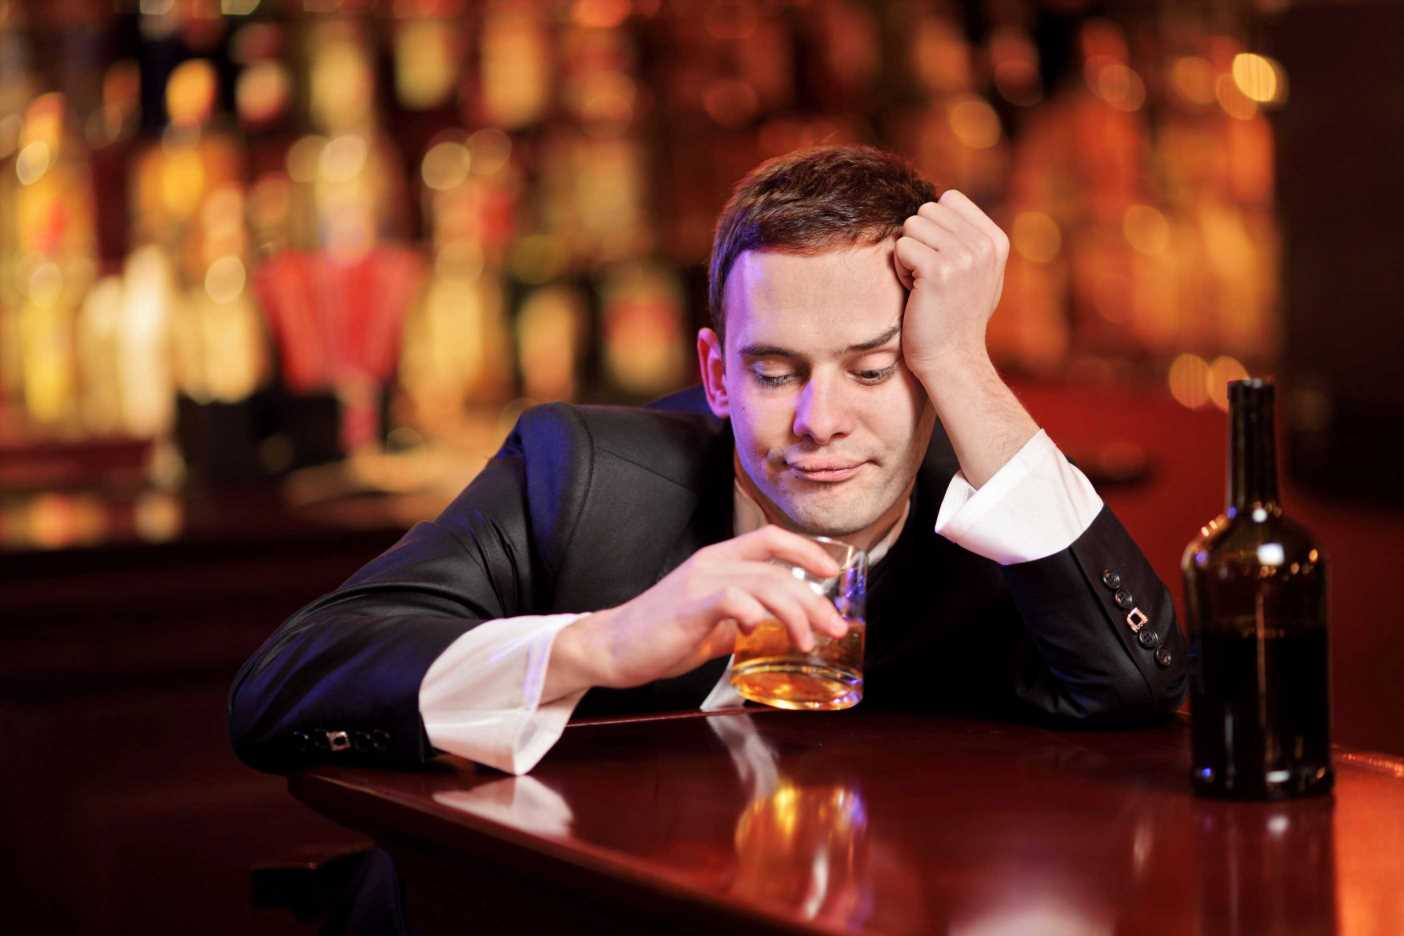 I'm anxious as I have no recollection of date with a girl due to booze – The Sun